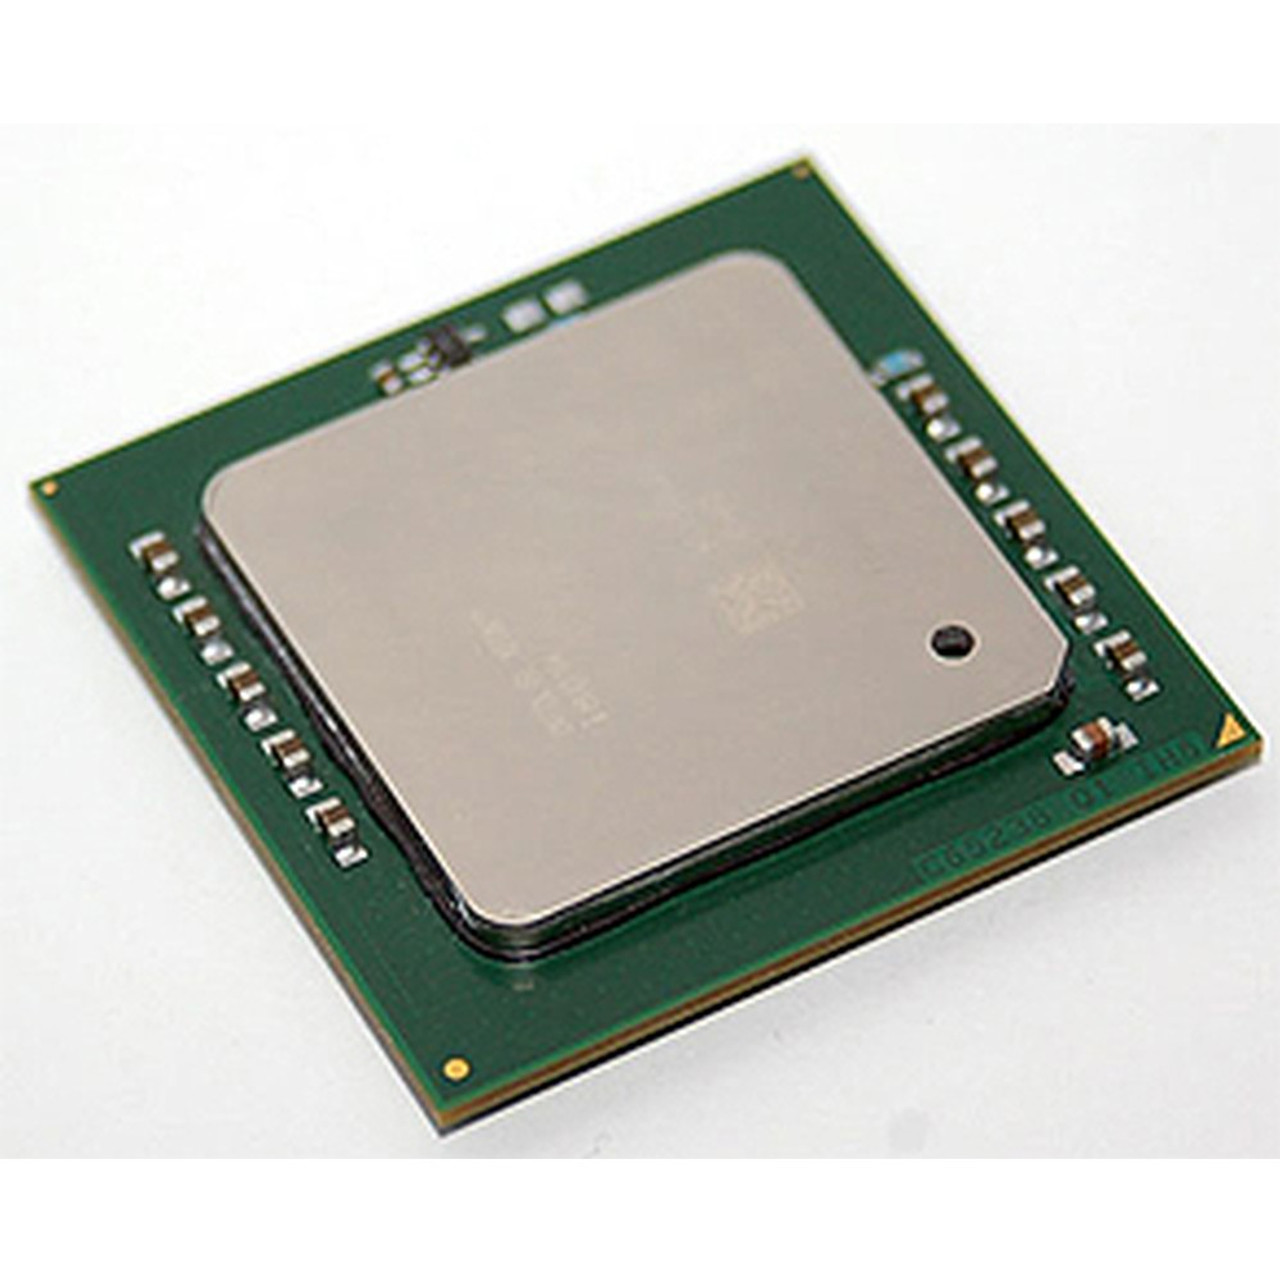 Intel Xeon 3.2 GHz 2MB Cache 800MHz Processor SL8P5 TESTED